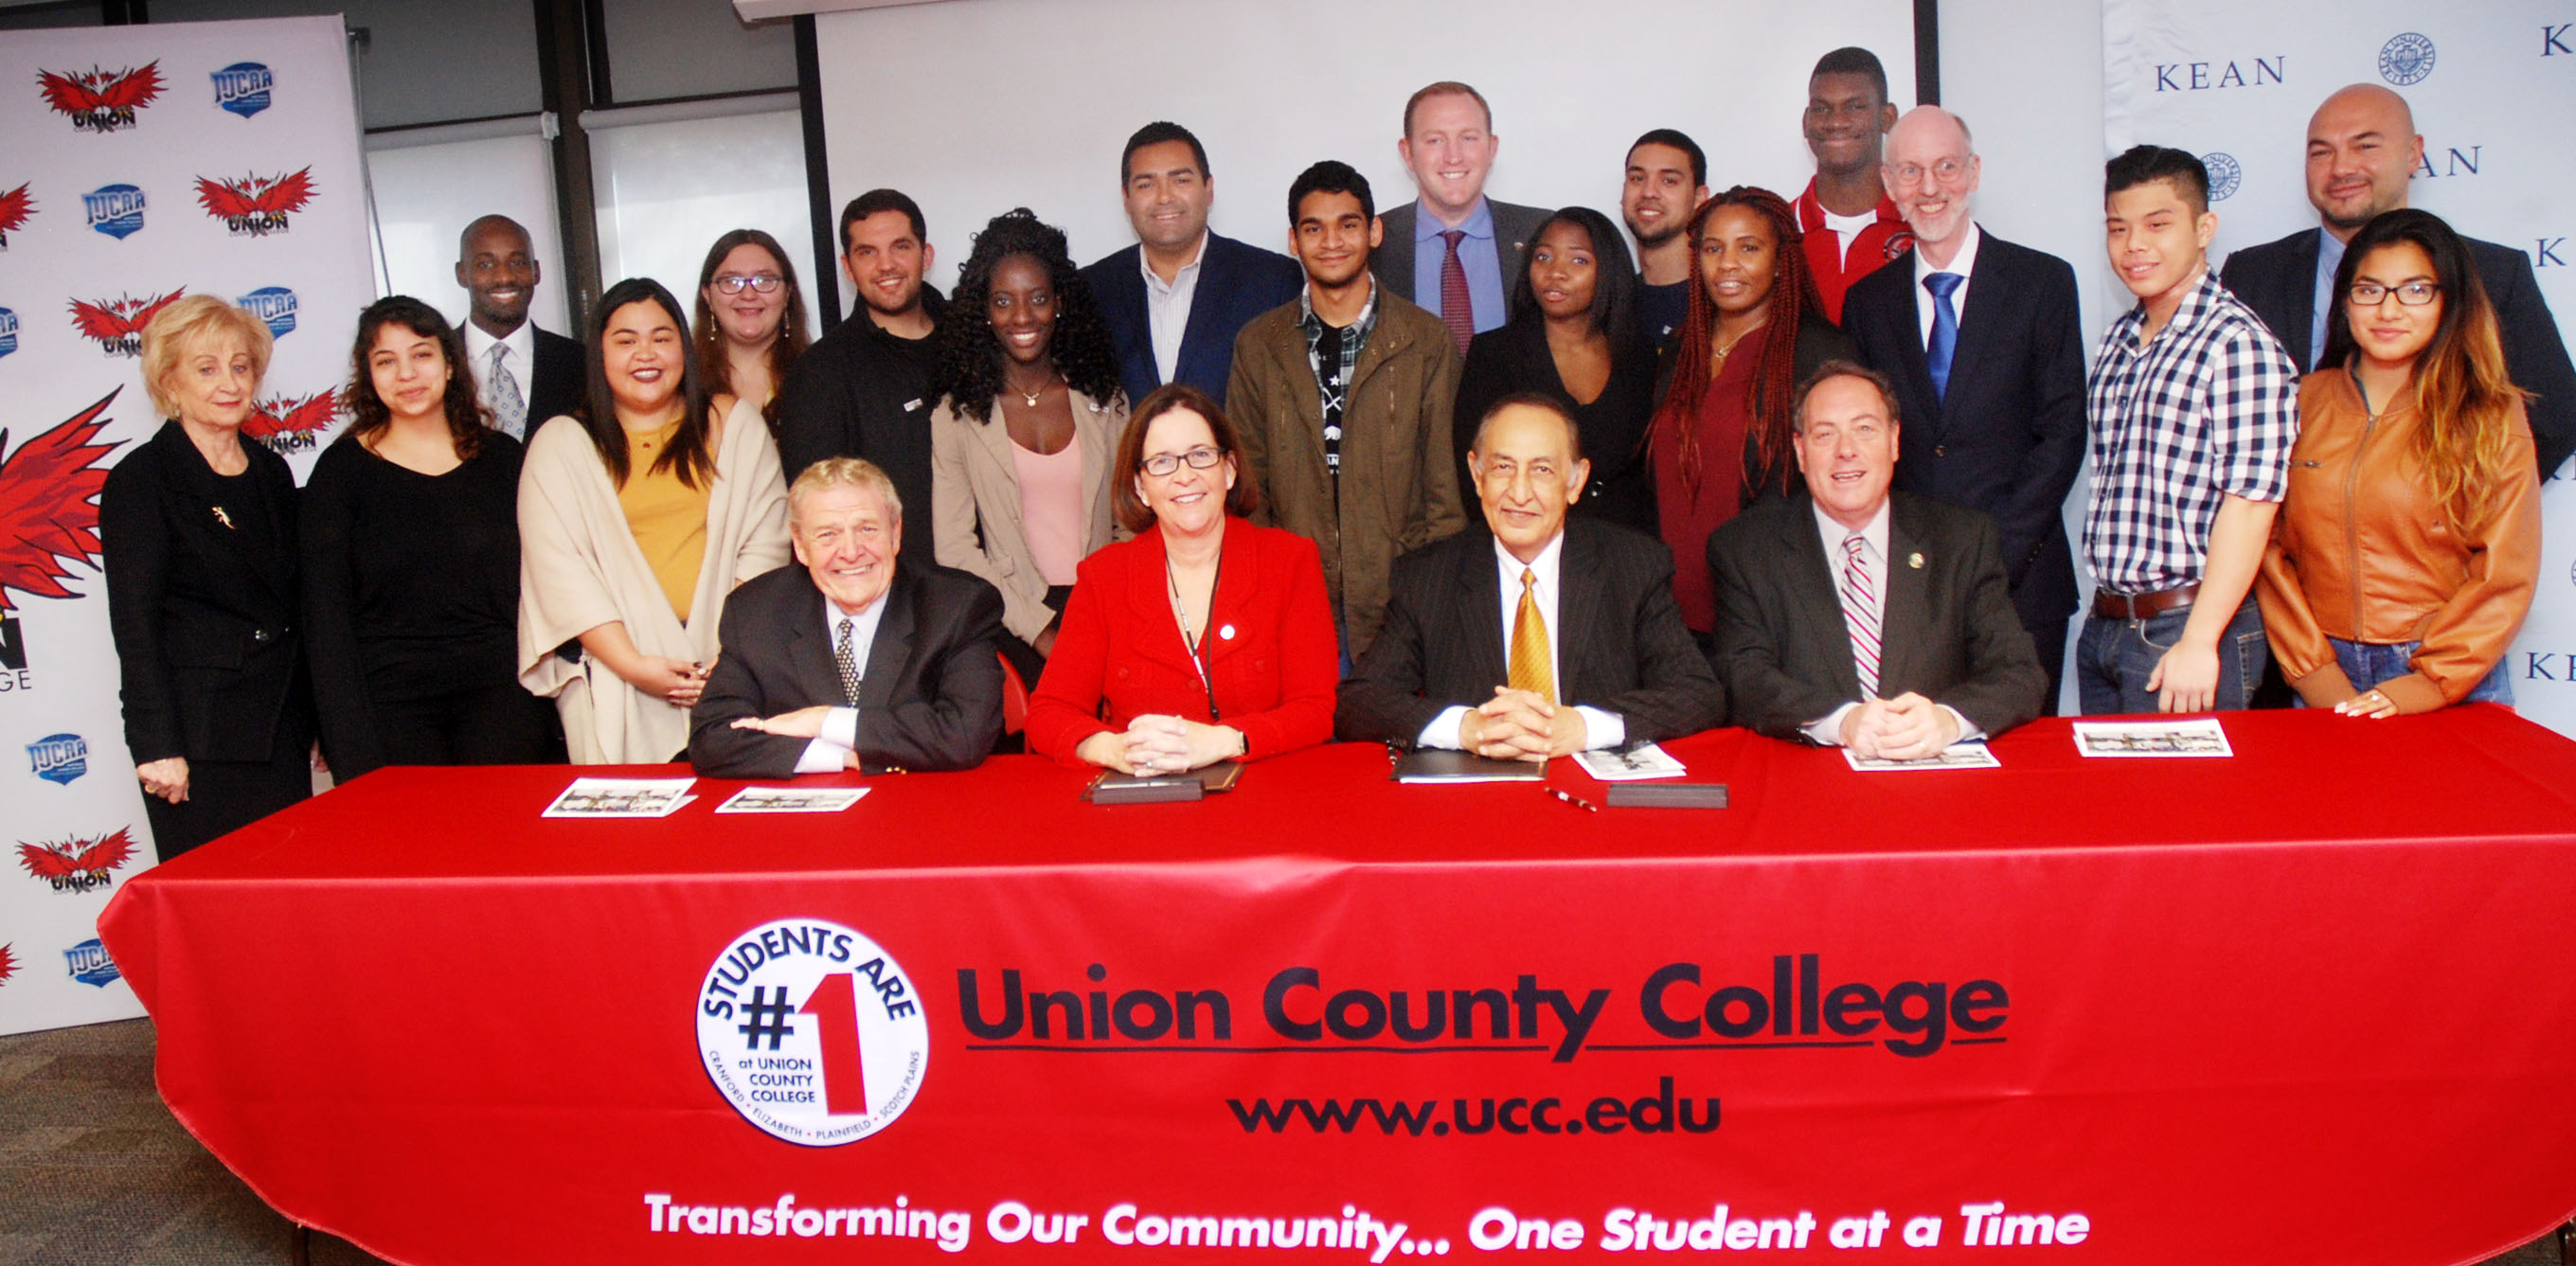 Union County College And Kean University Sign Joint Admission